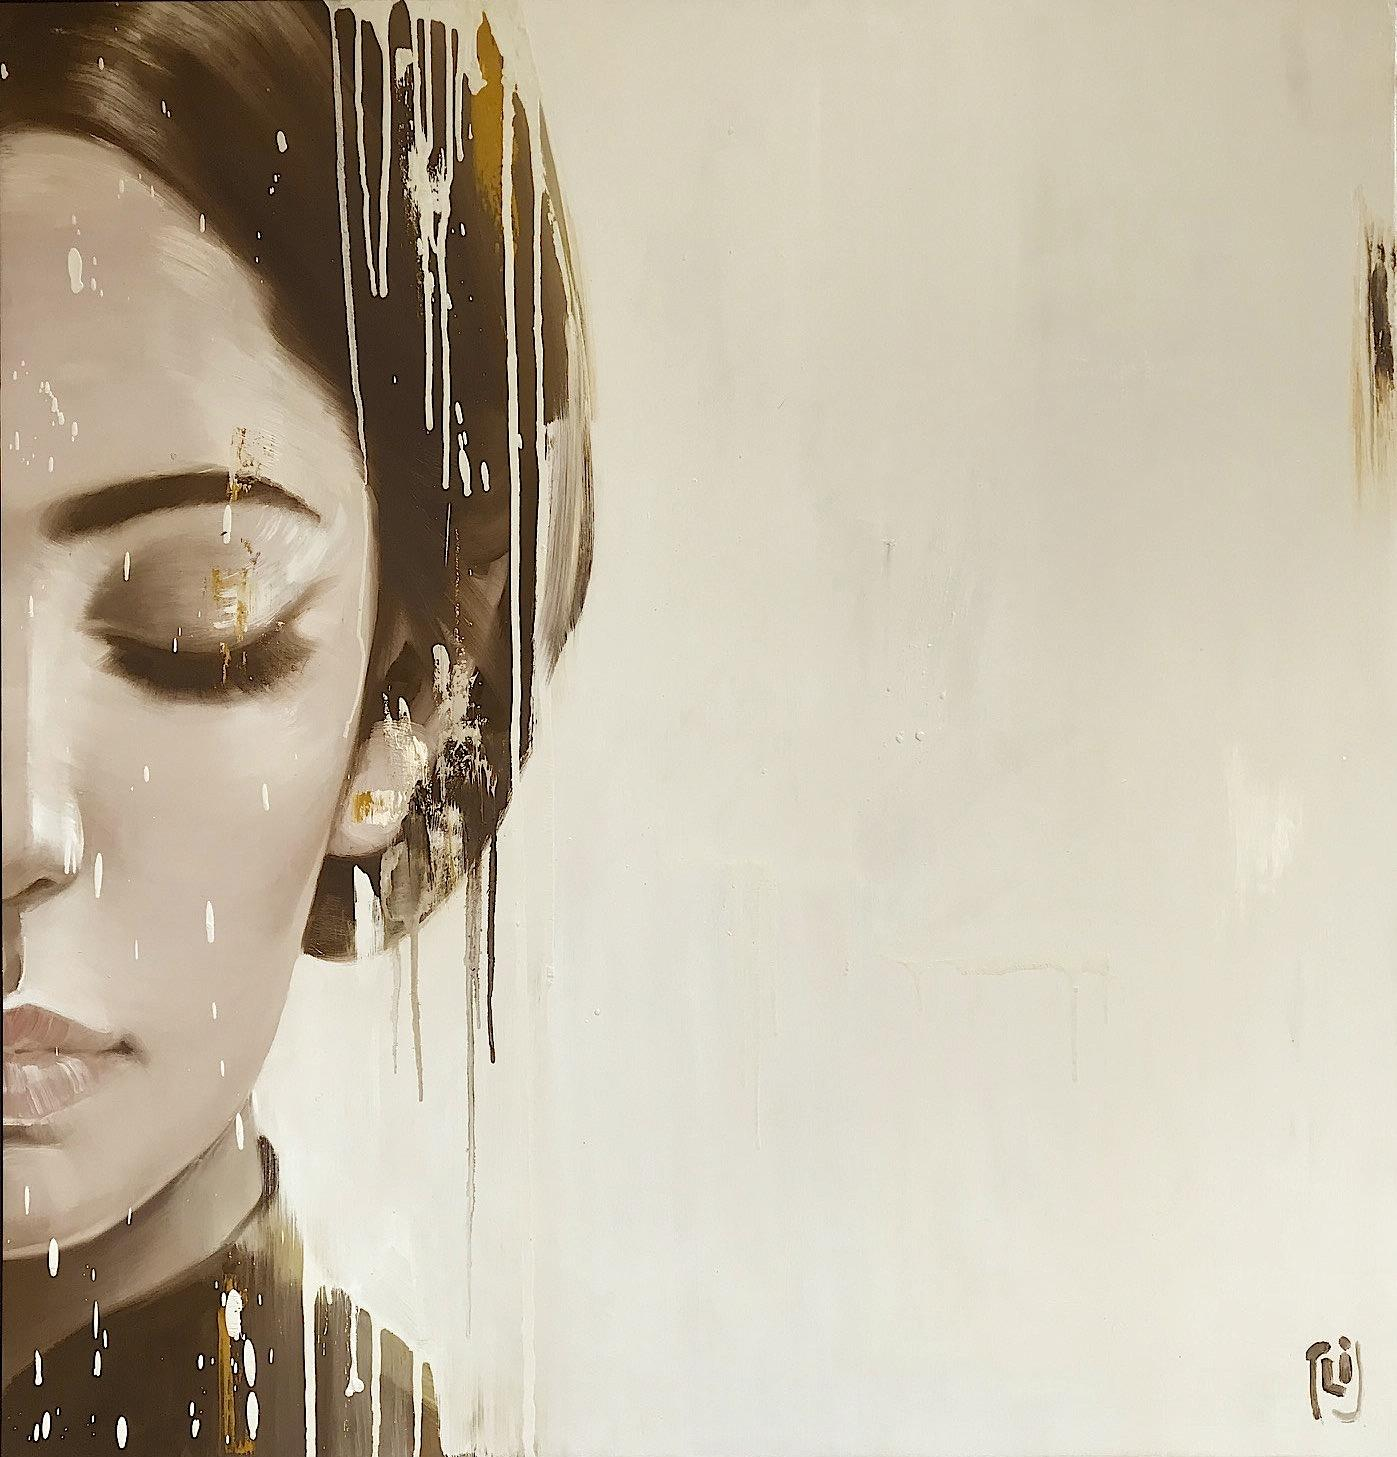 A Glance I - 105x110 cm - Oil on canvas - Phuong Quoc Tri - Luxembourg Art